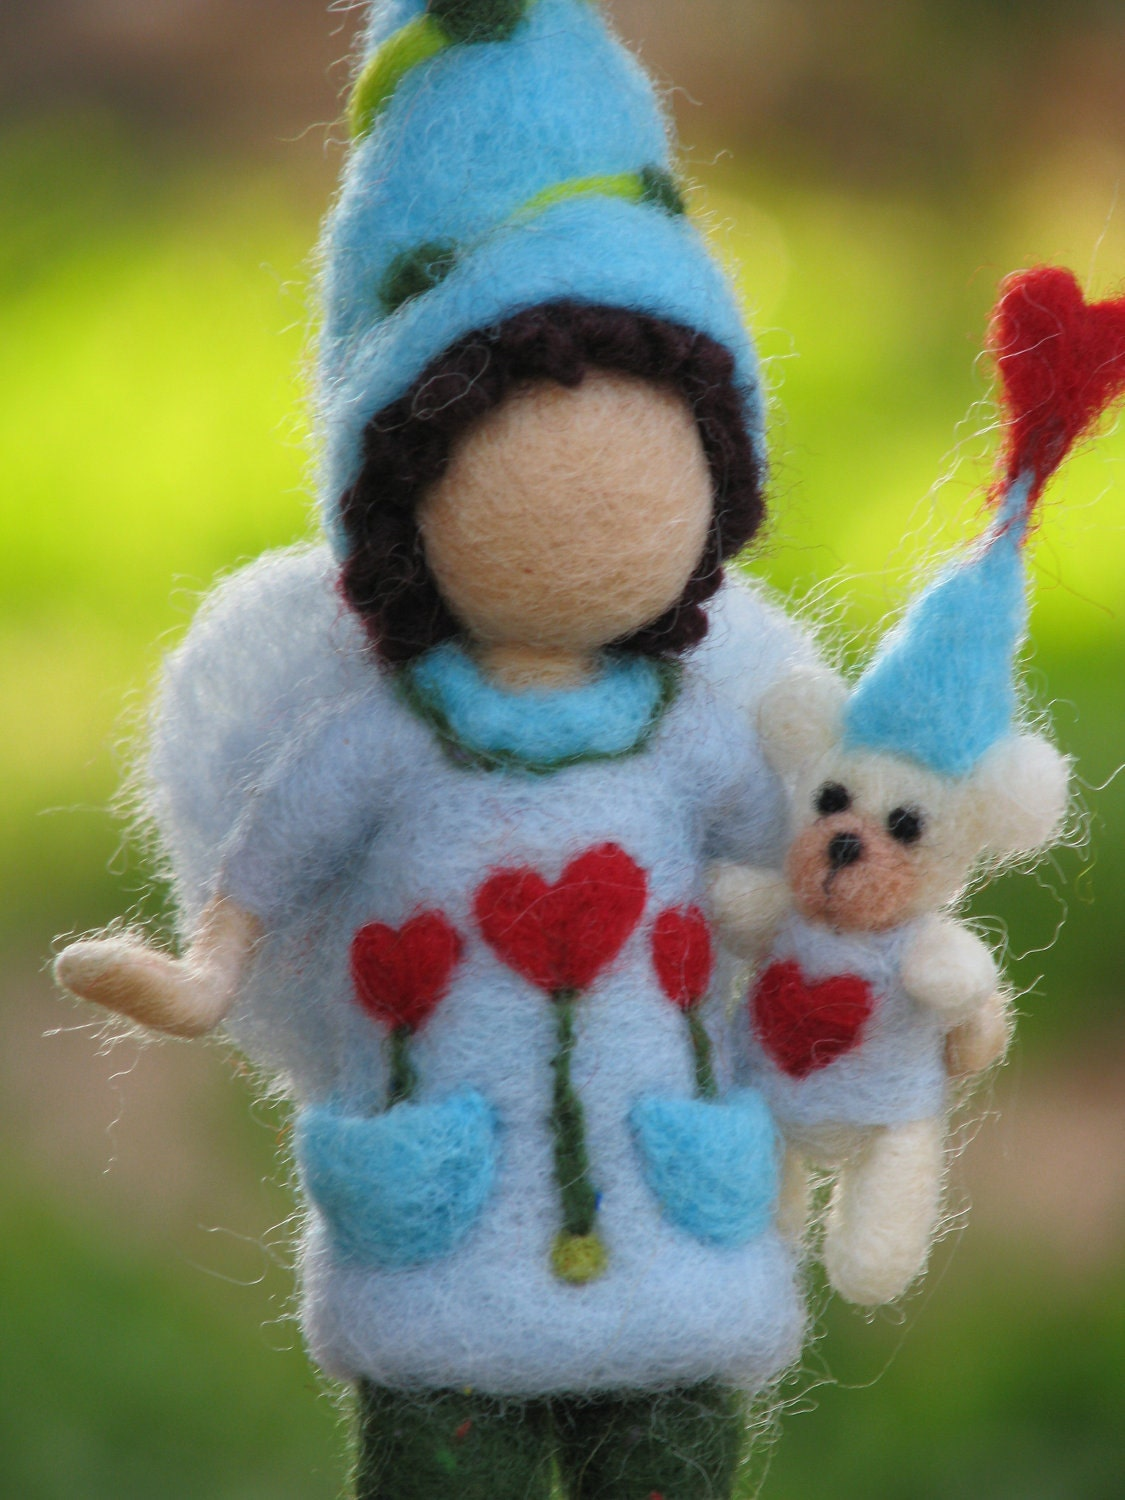 Needle felted waldorf inspired elf with teddy bear